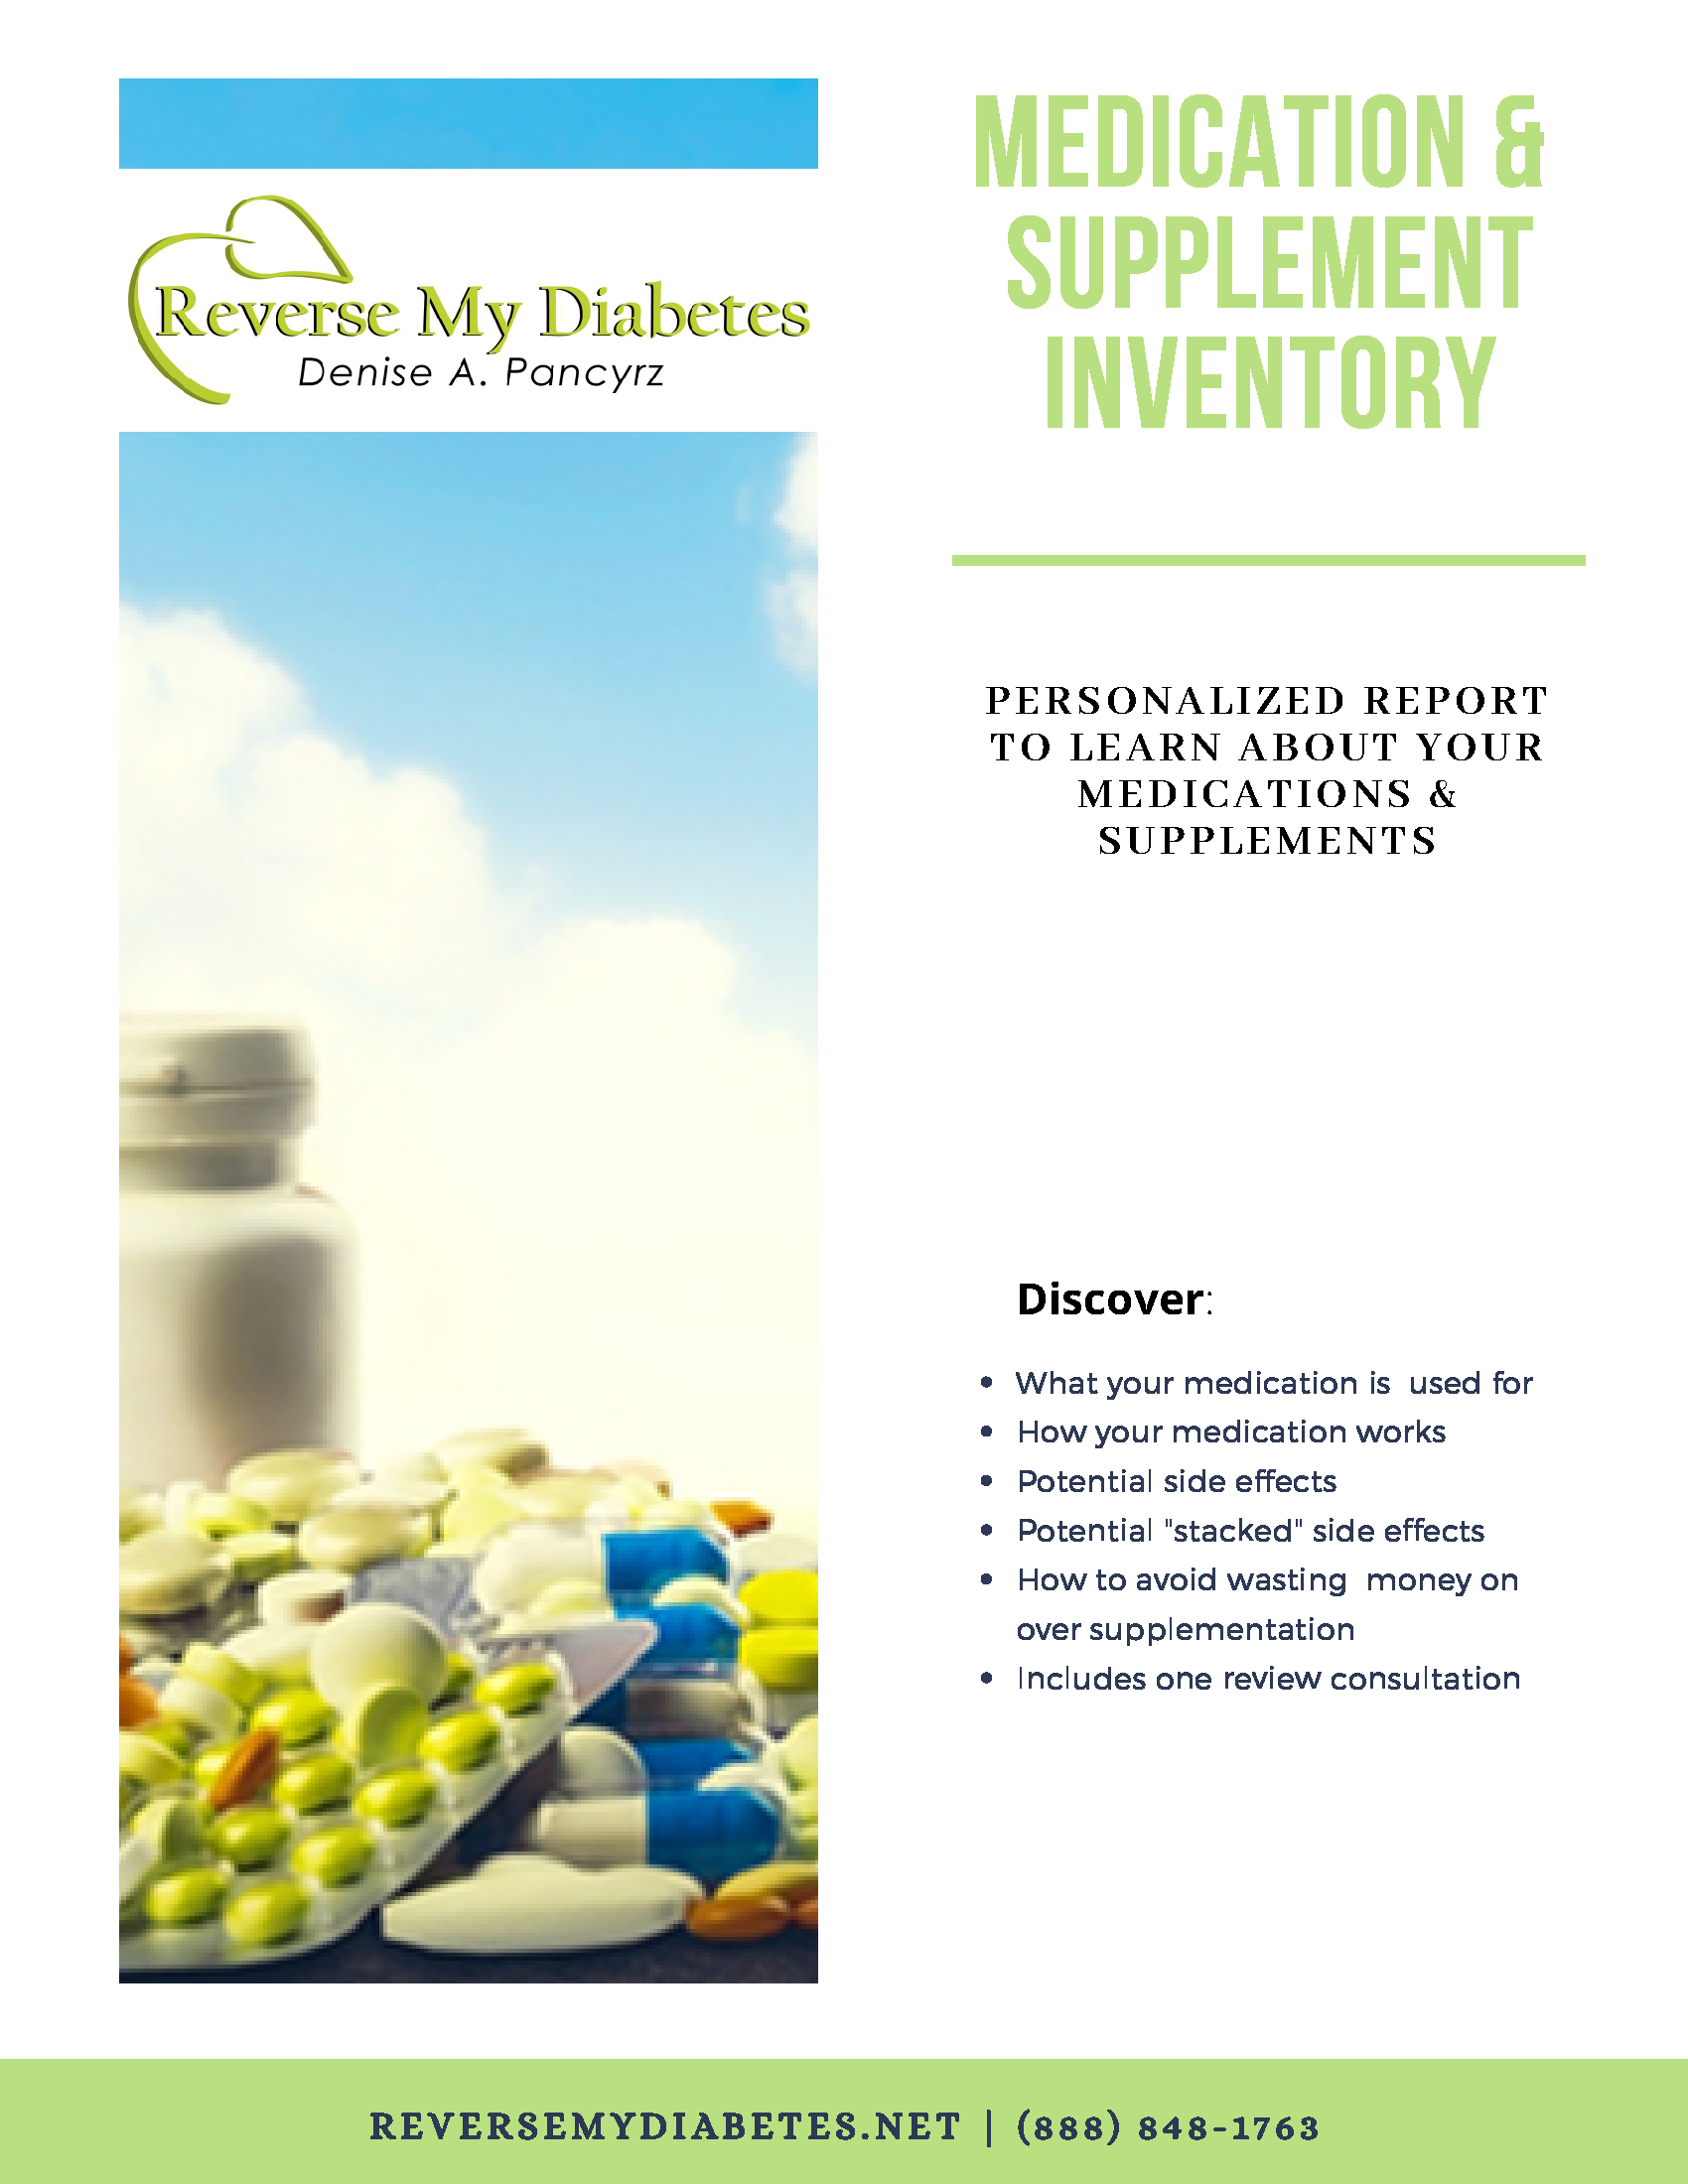 Medication & Supplement Inventory & Consultation - $75